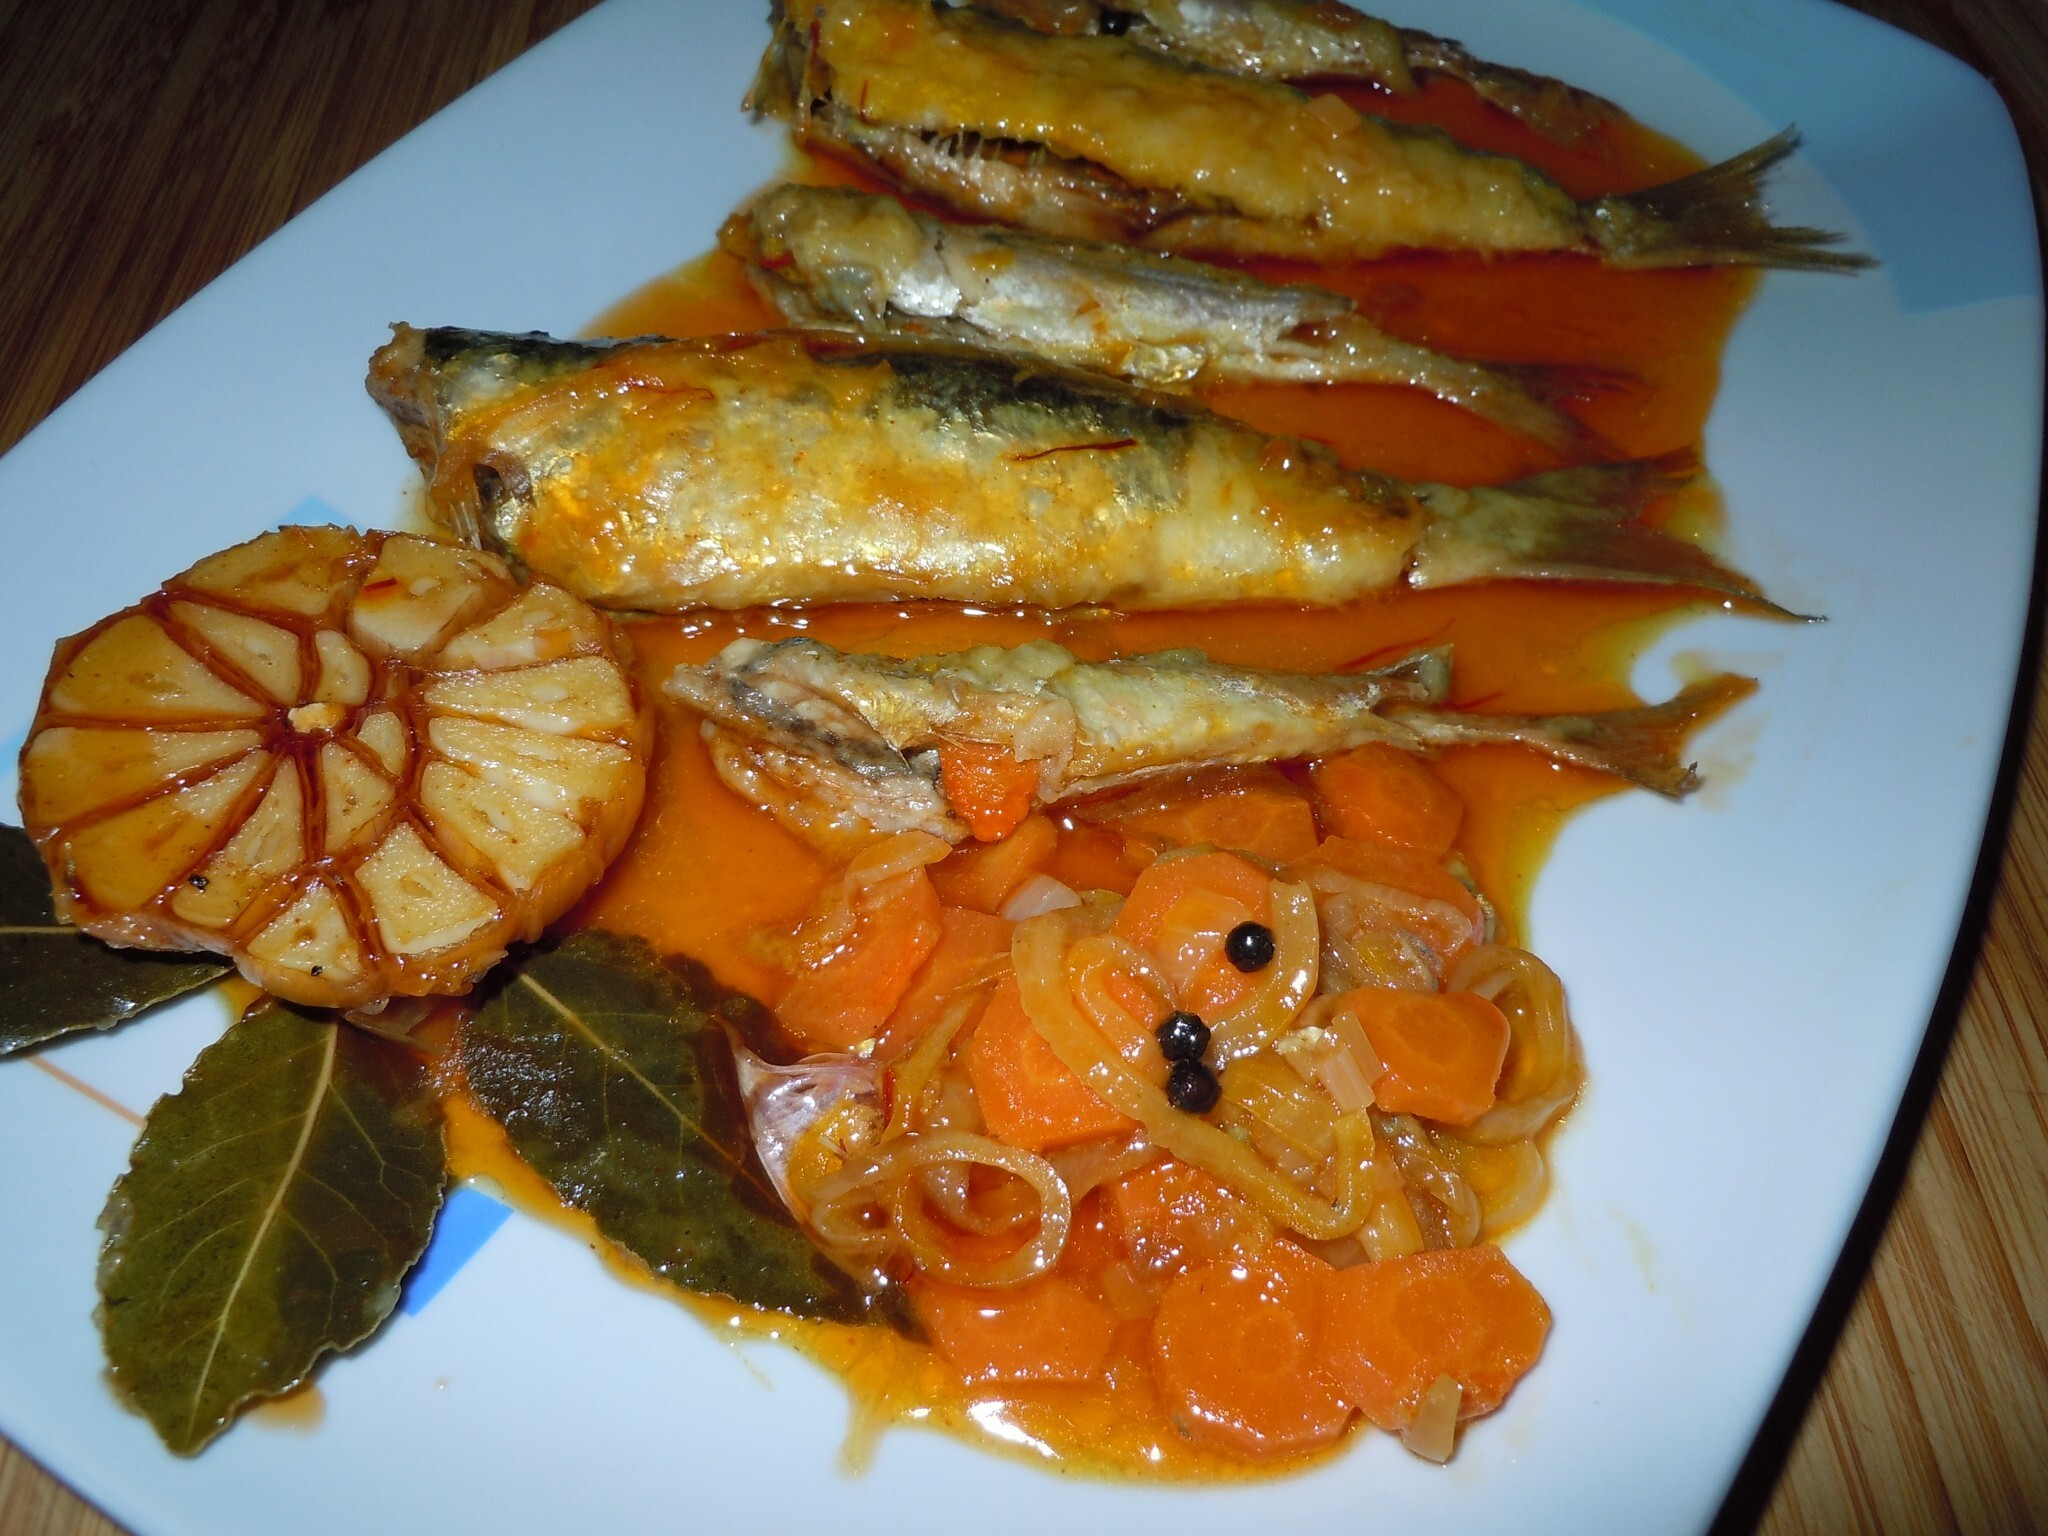 ESCABECHE DE SARDINAS Y CHICHARRITOS